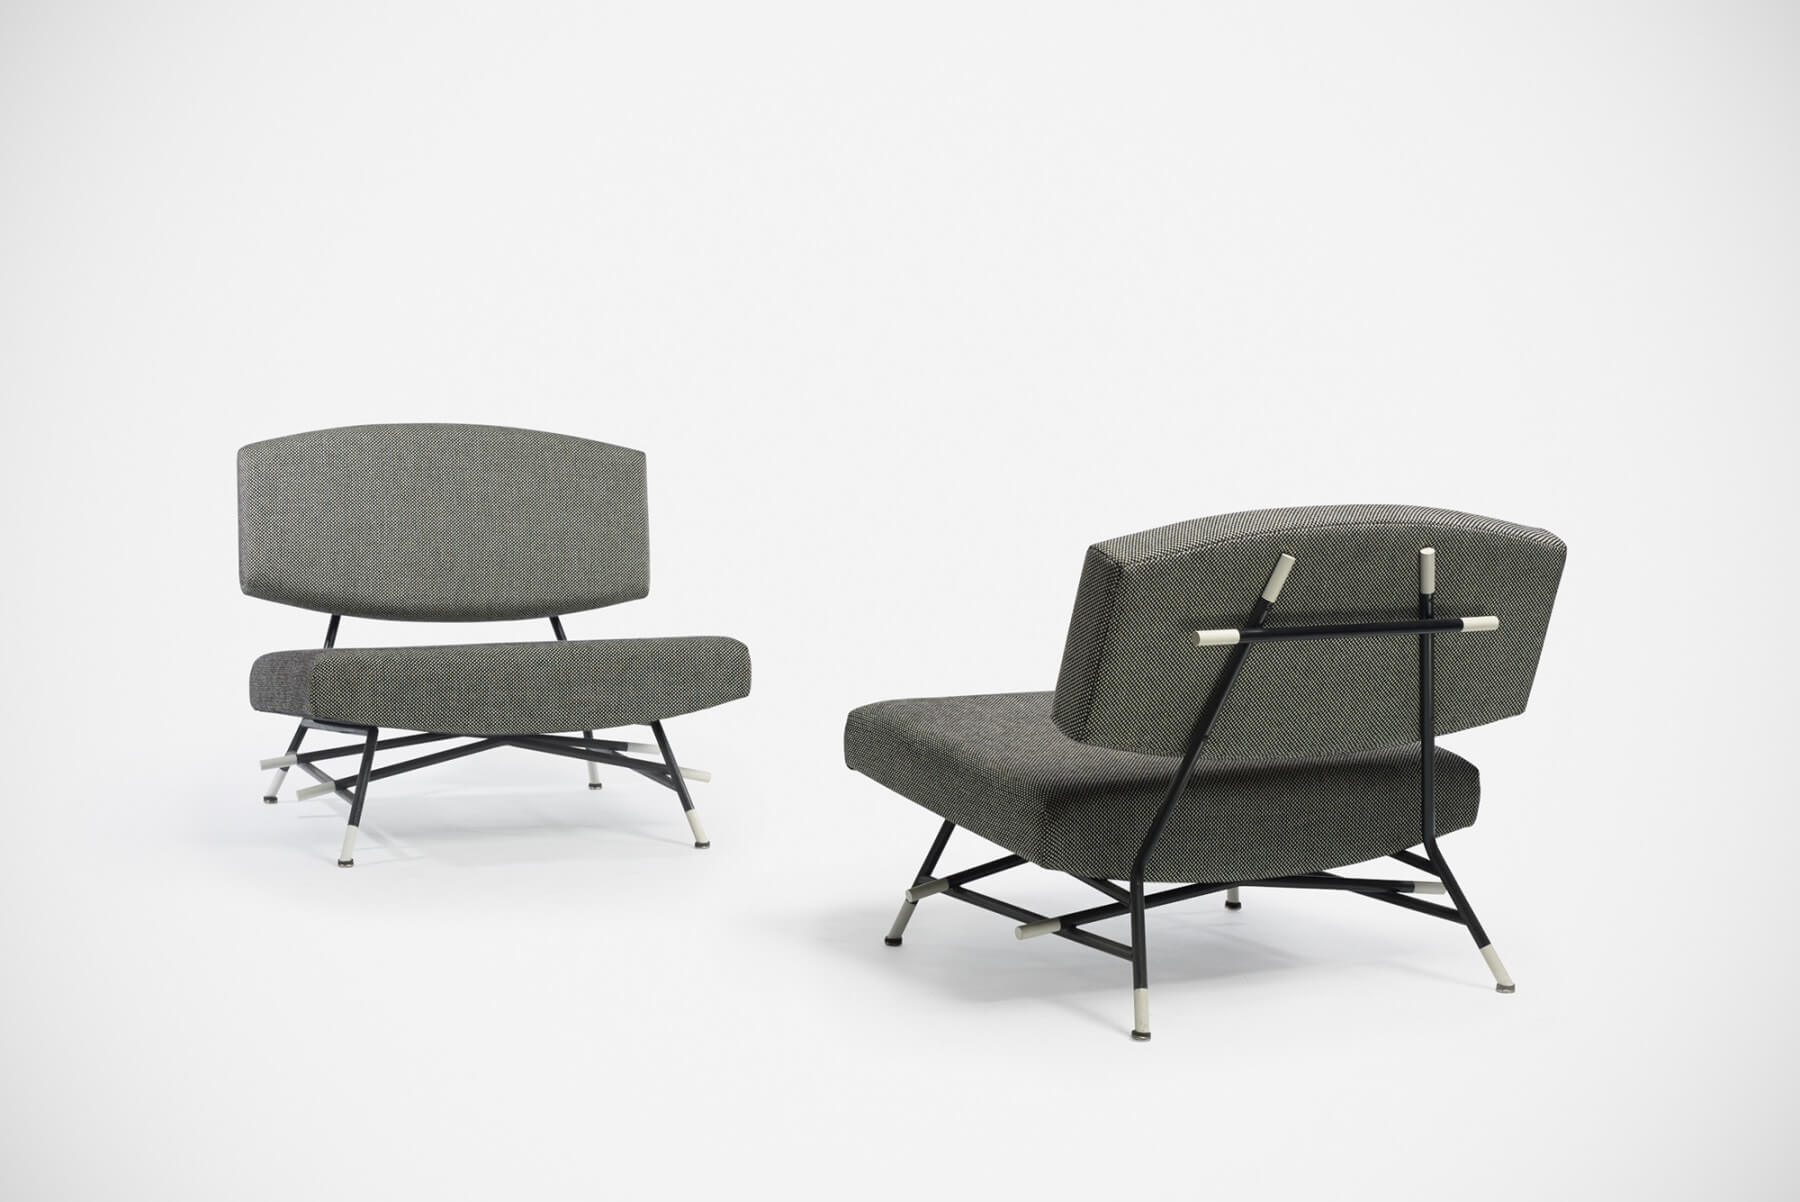 Ico Parisi |   Lounge chairs, model no. 865